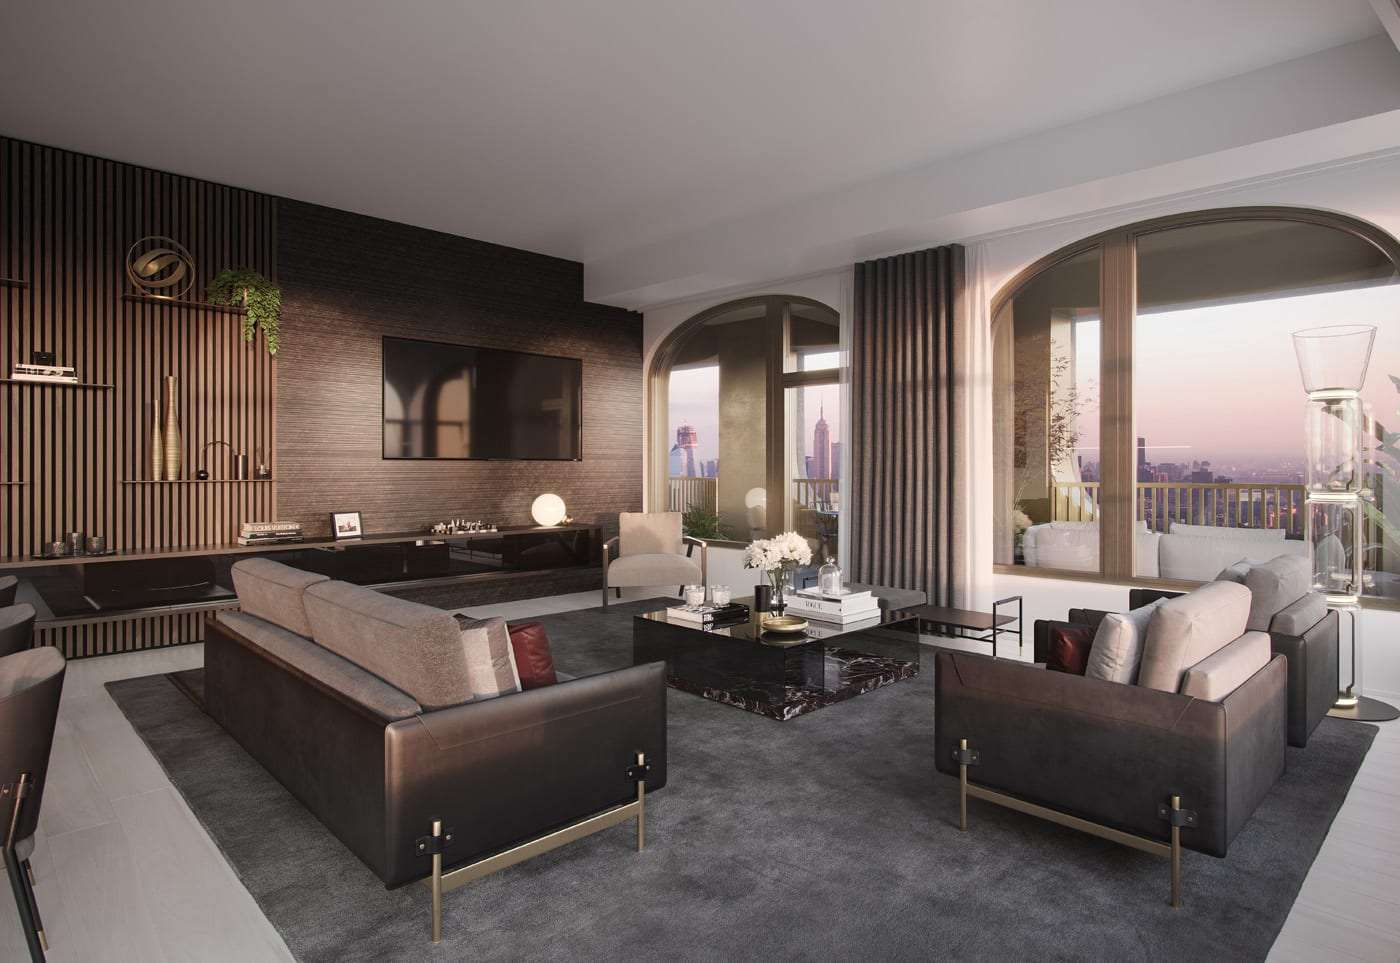 Aston Martin Creating Luxury Homes In New York City That Come With A Special Edition Suv Mansbrand